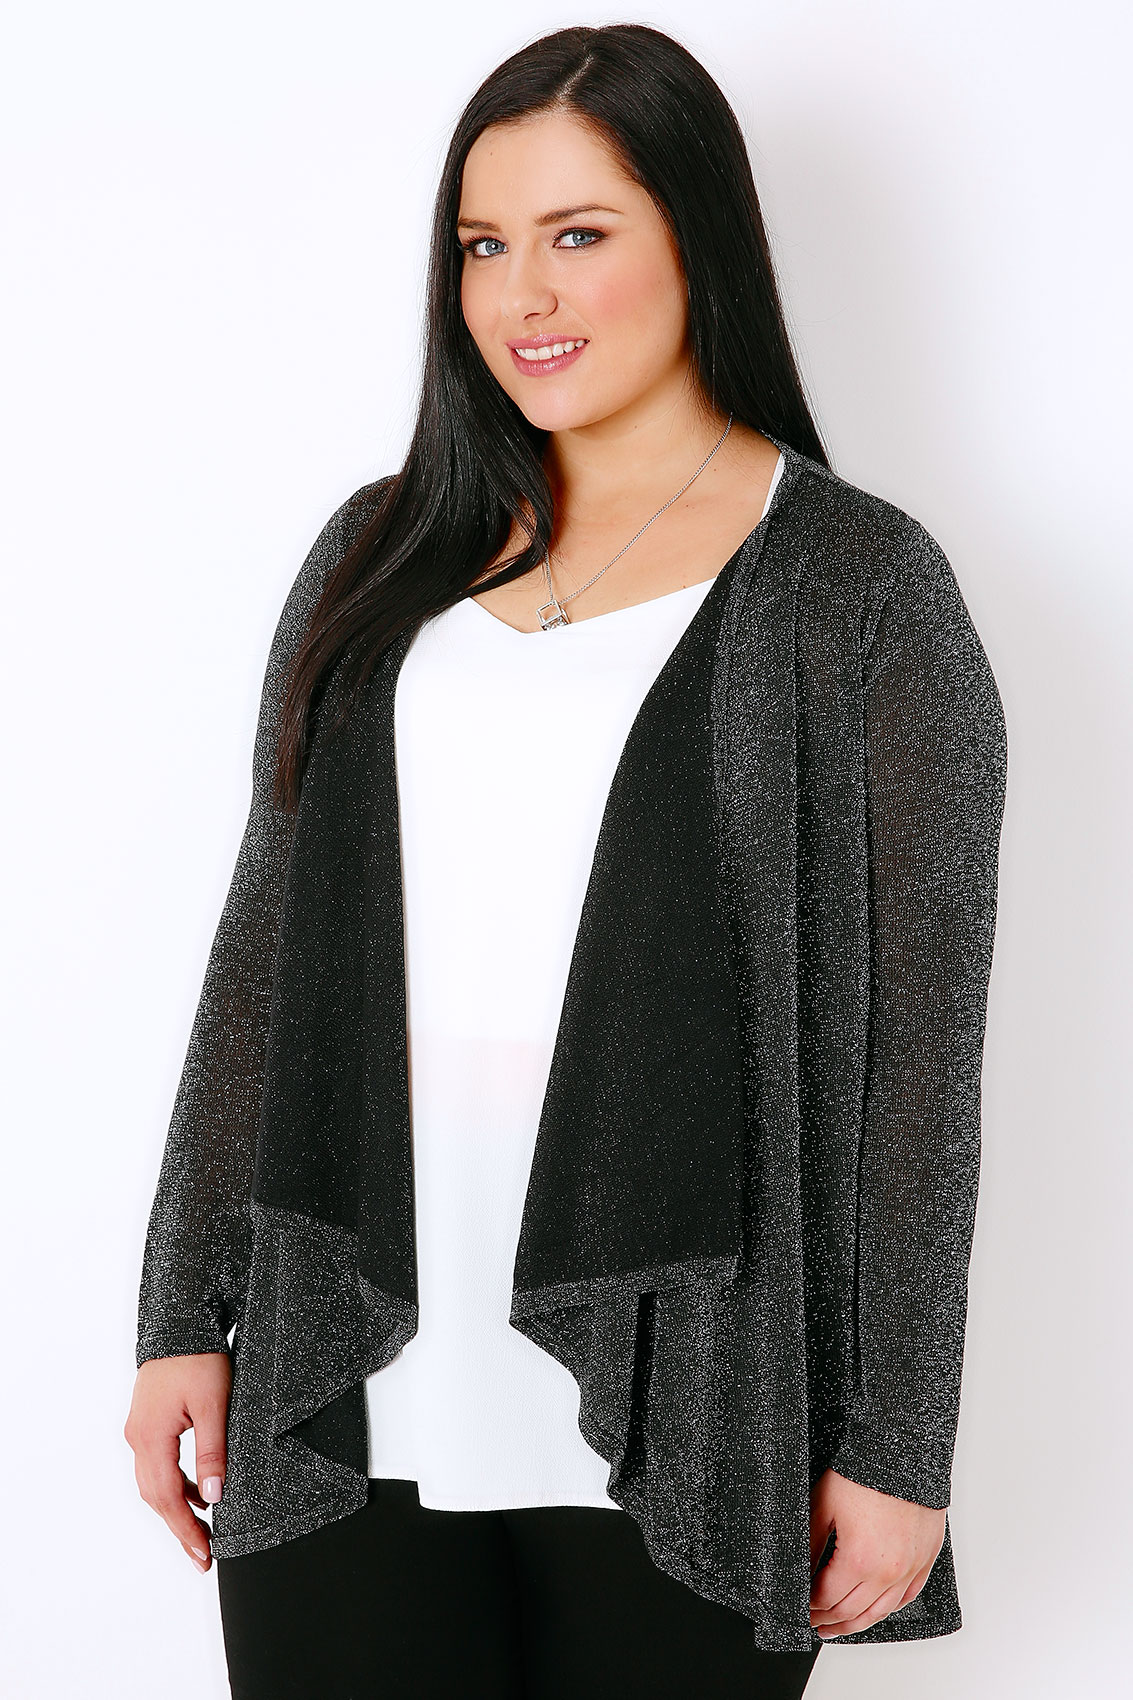 Black & Silver Sparkle Cardigan With Waterfall Front, Plus size 16 ...